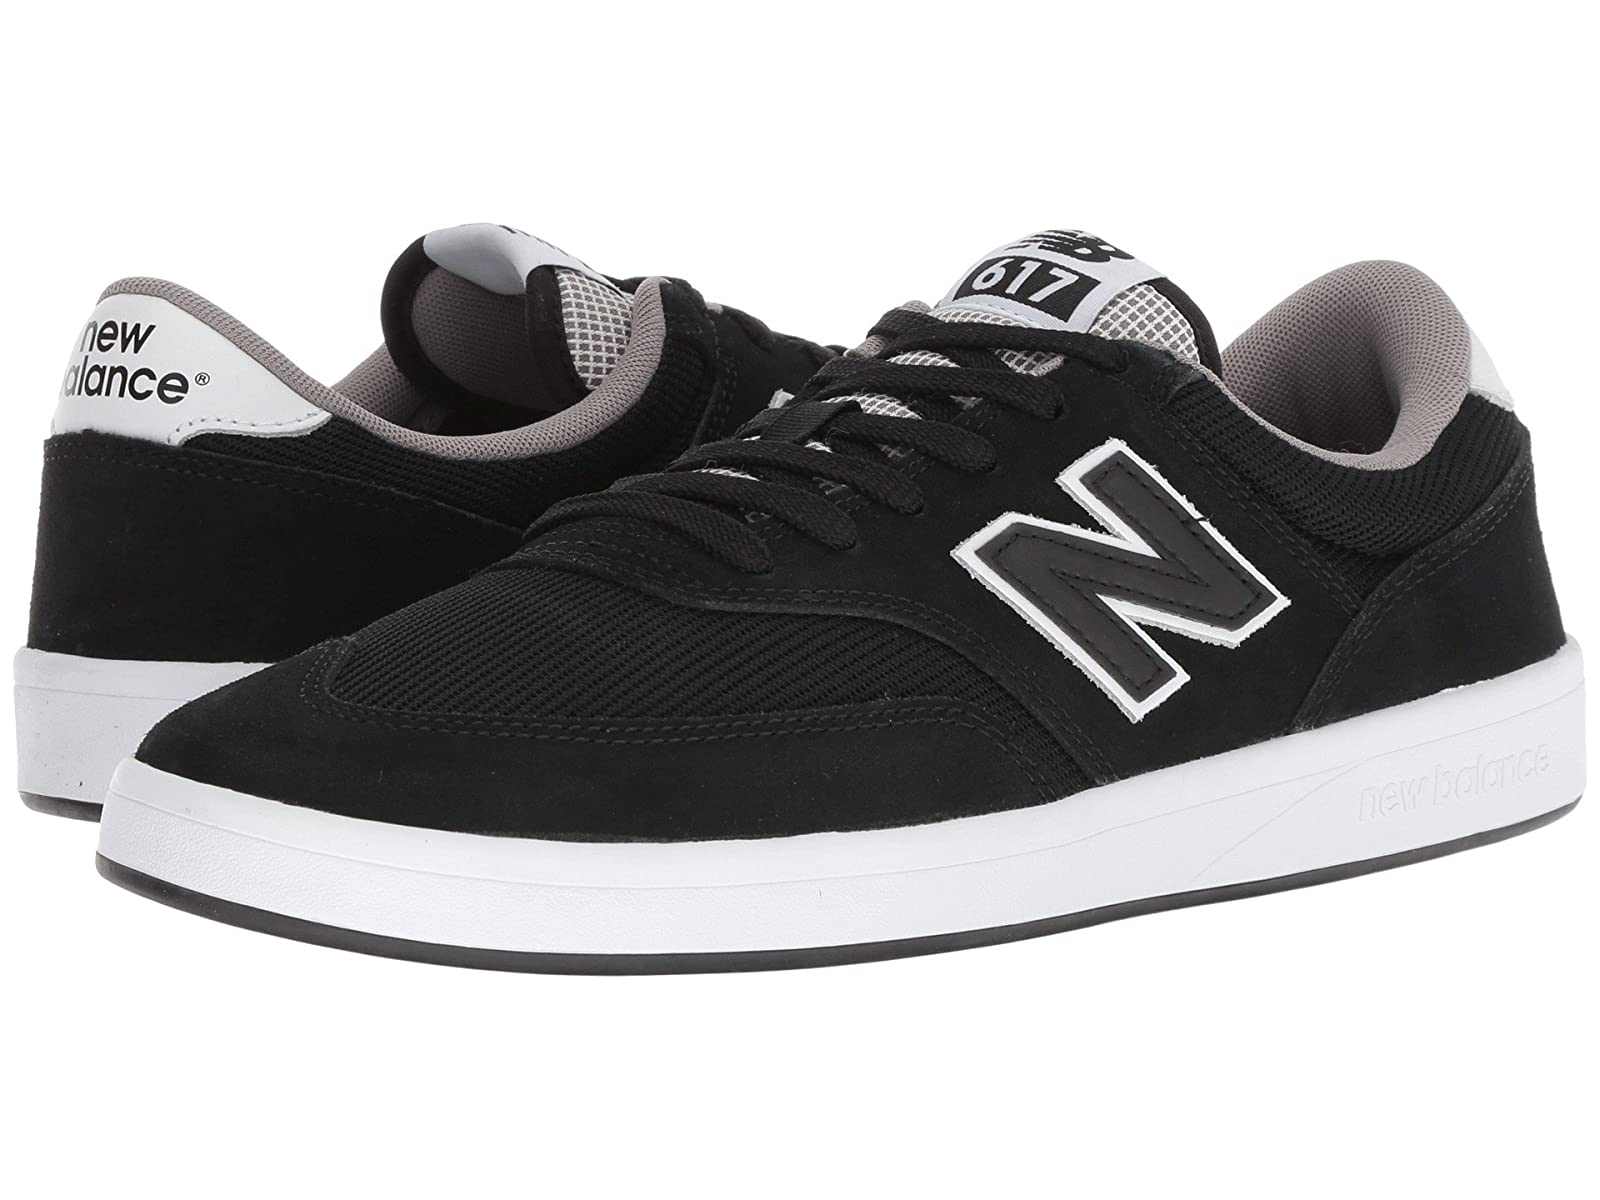 New Balance Numeric AM617Atmospheric grades have affordable shoes